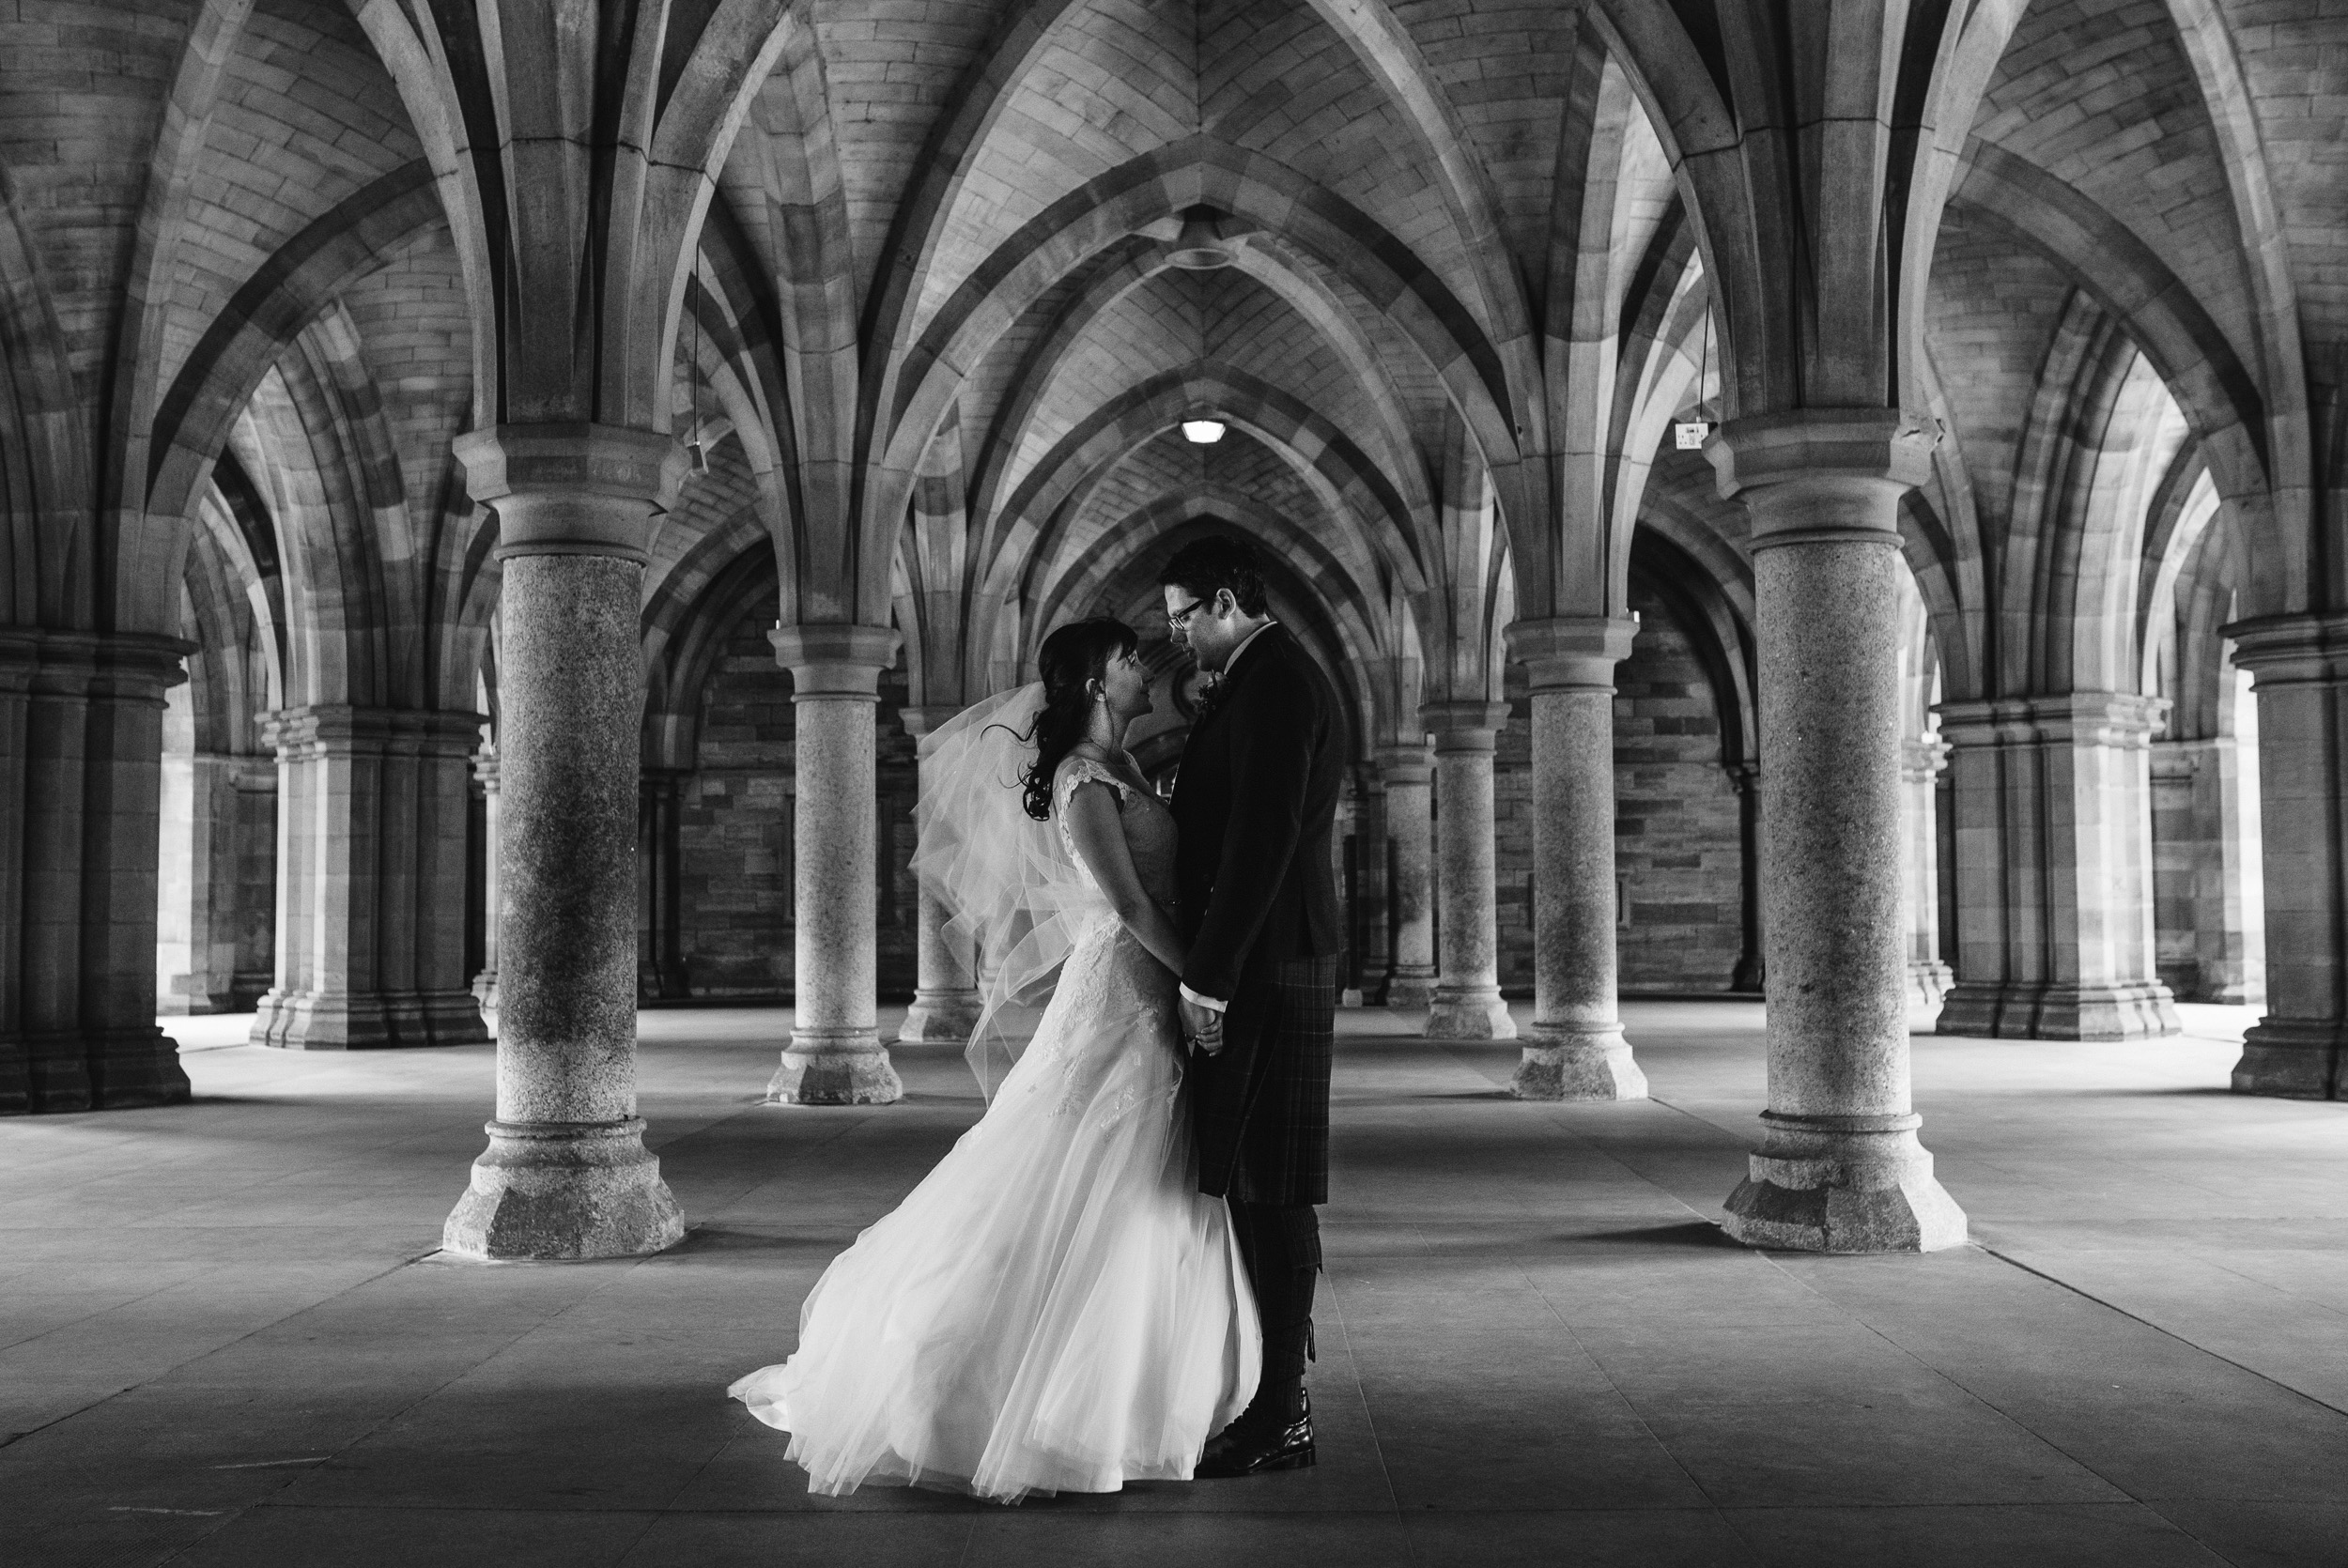 Glasgow University Cloisters Wedding